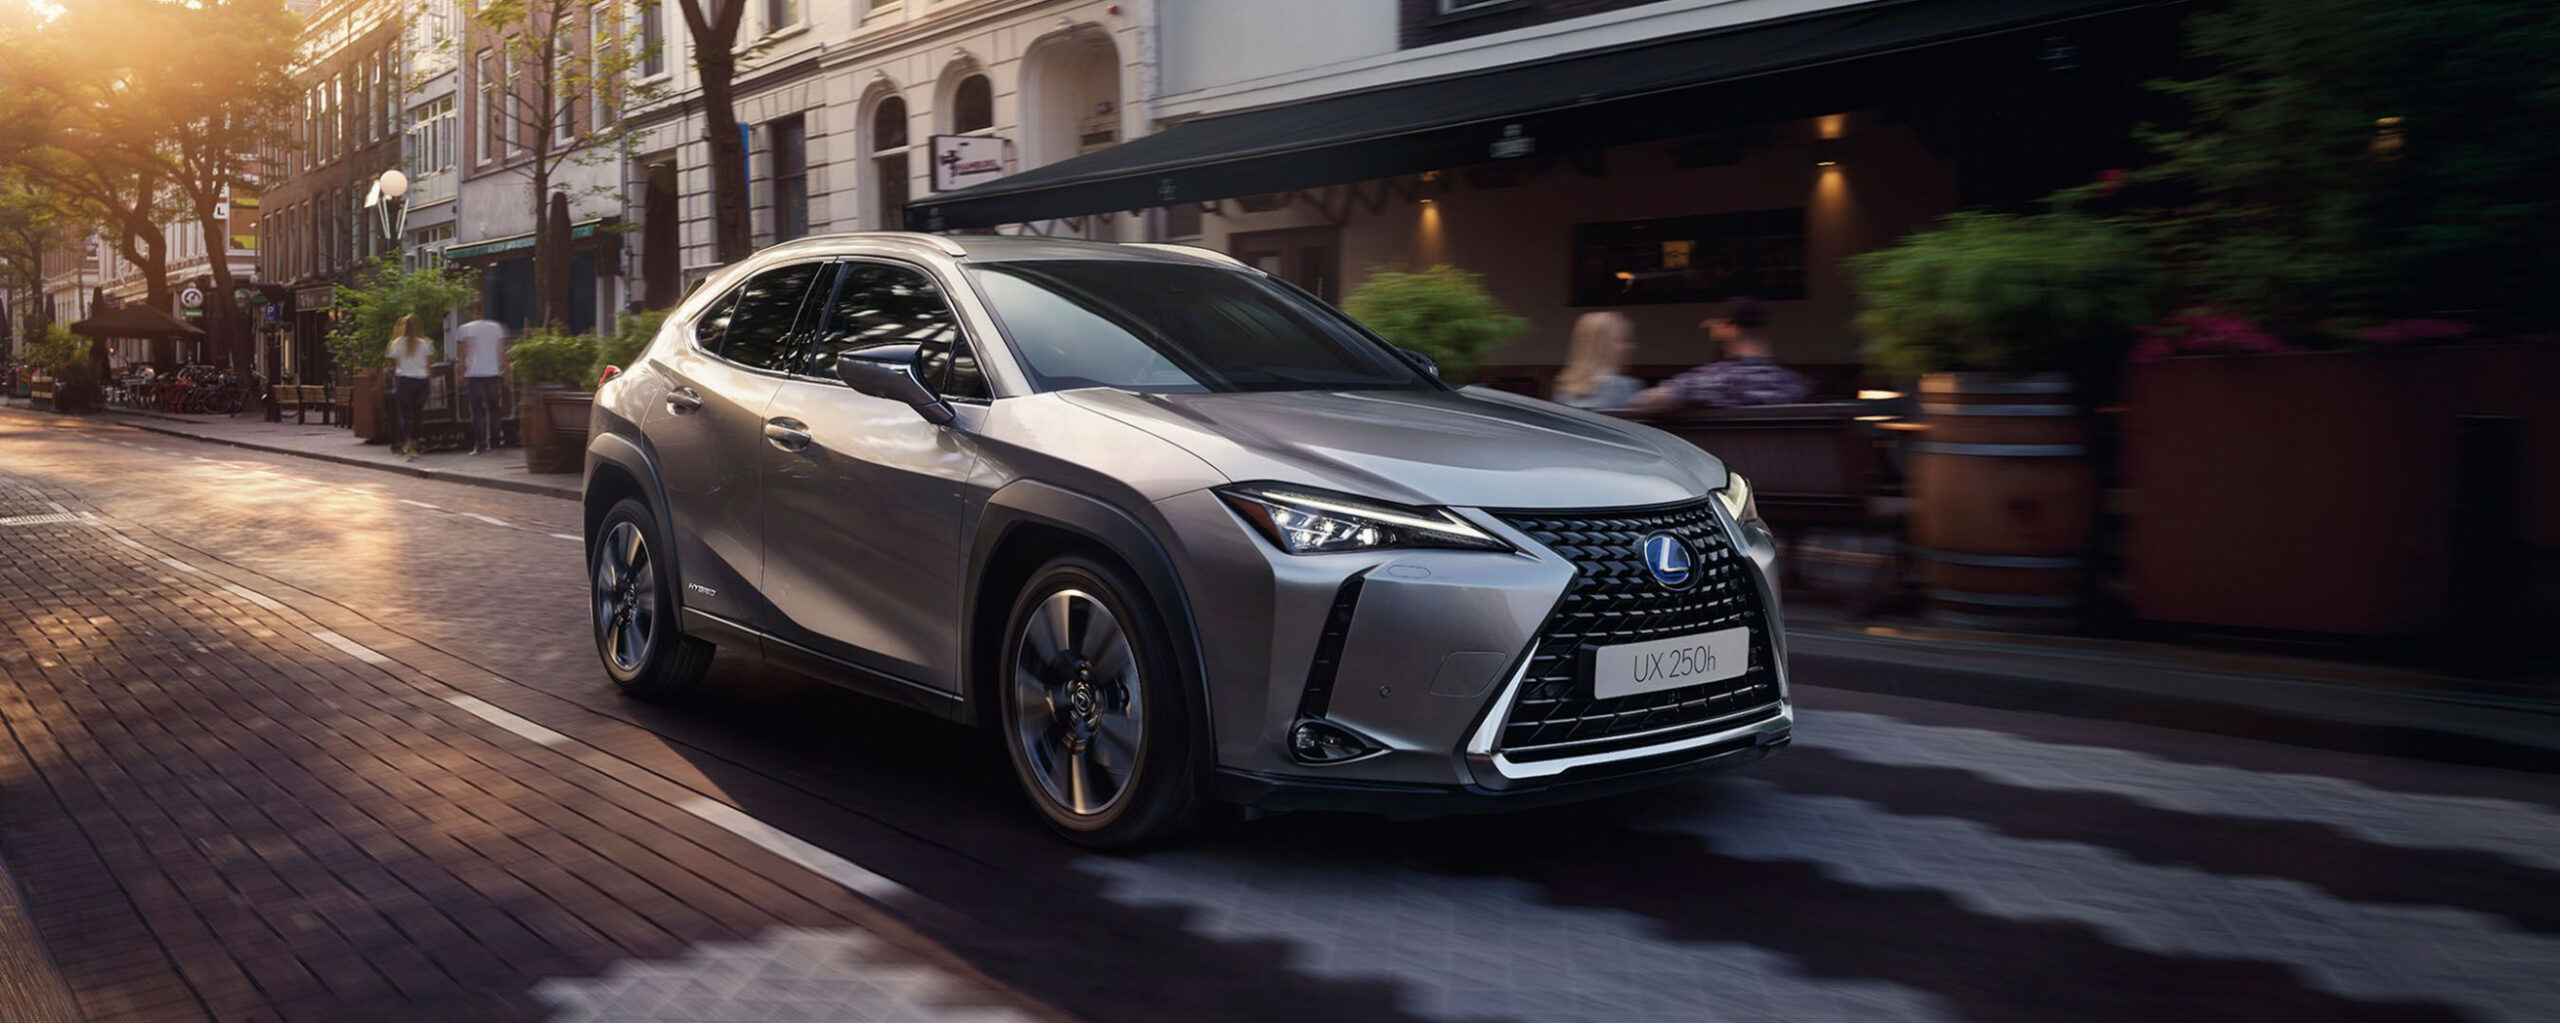 6+ lexus motability 6 Price and Release date